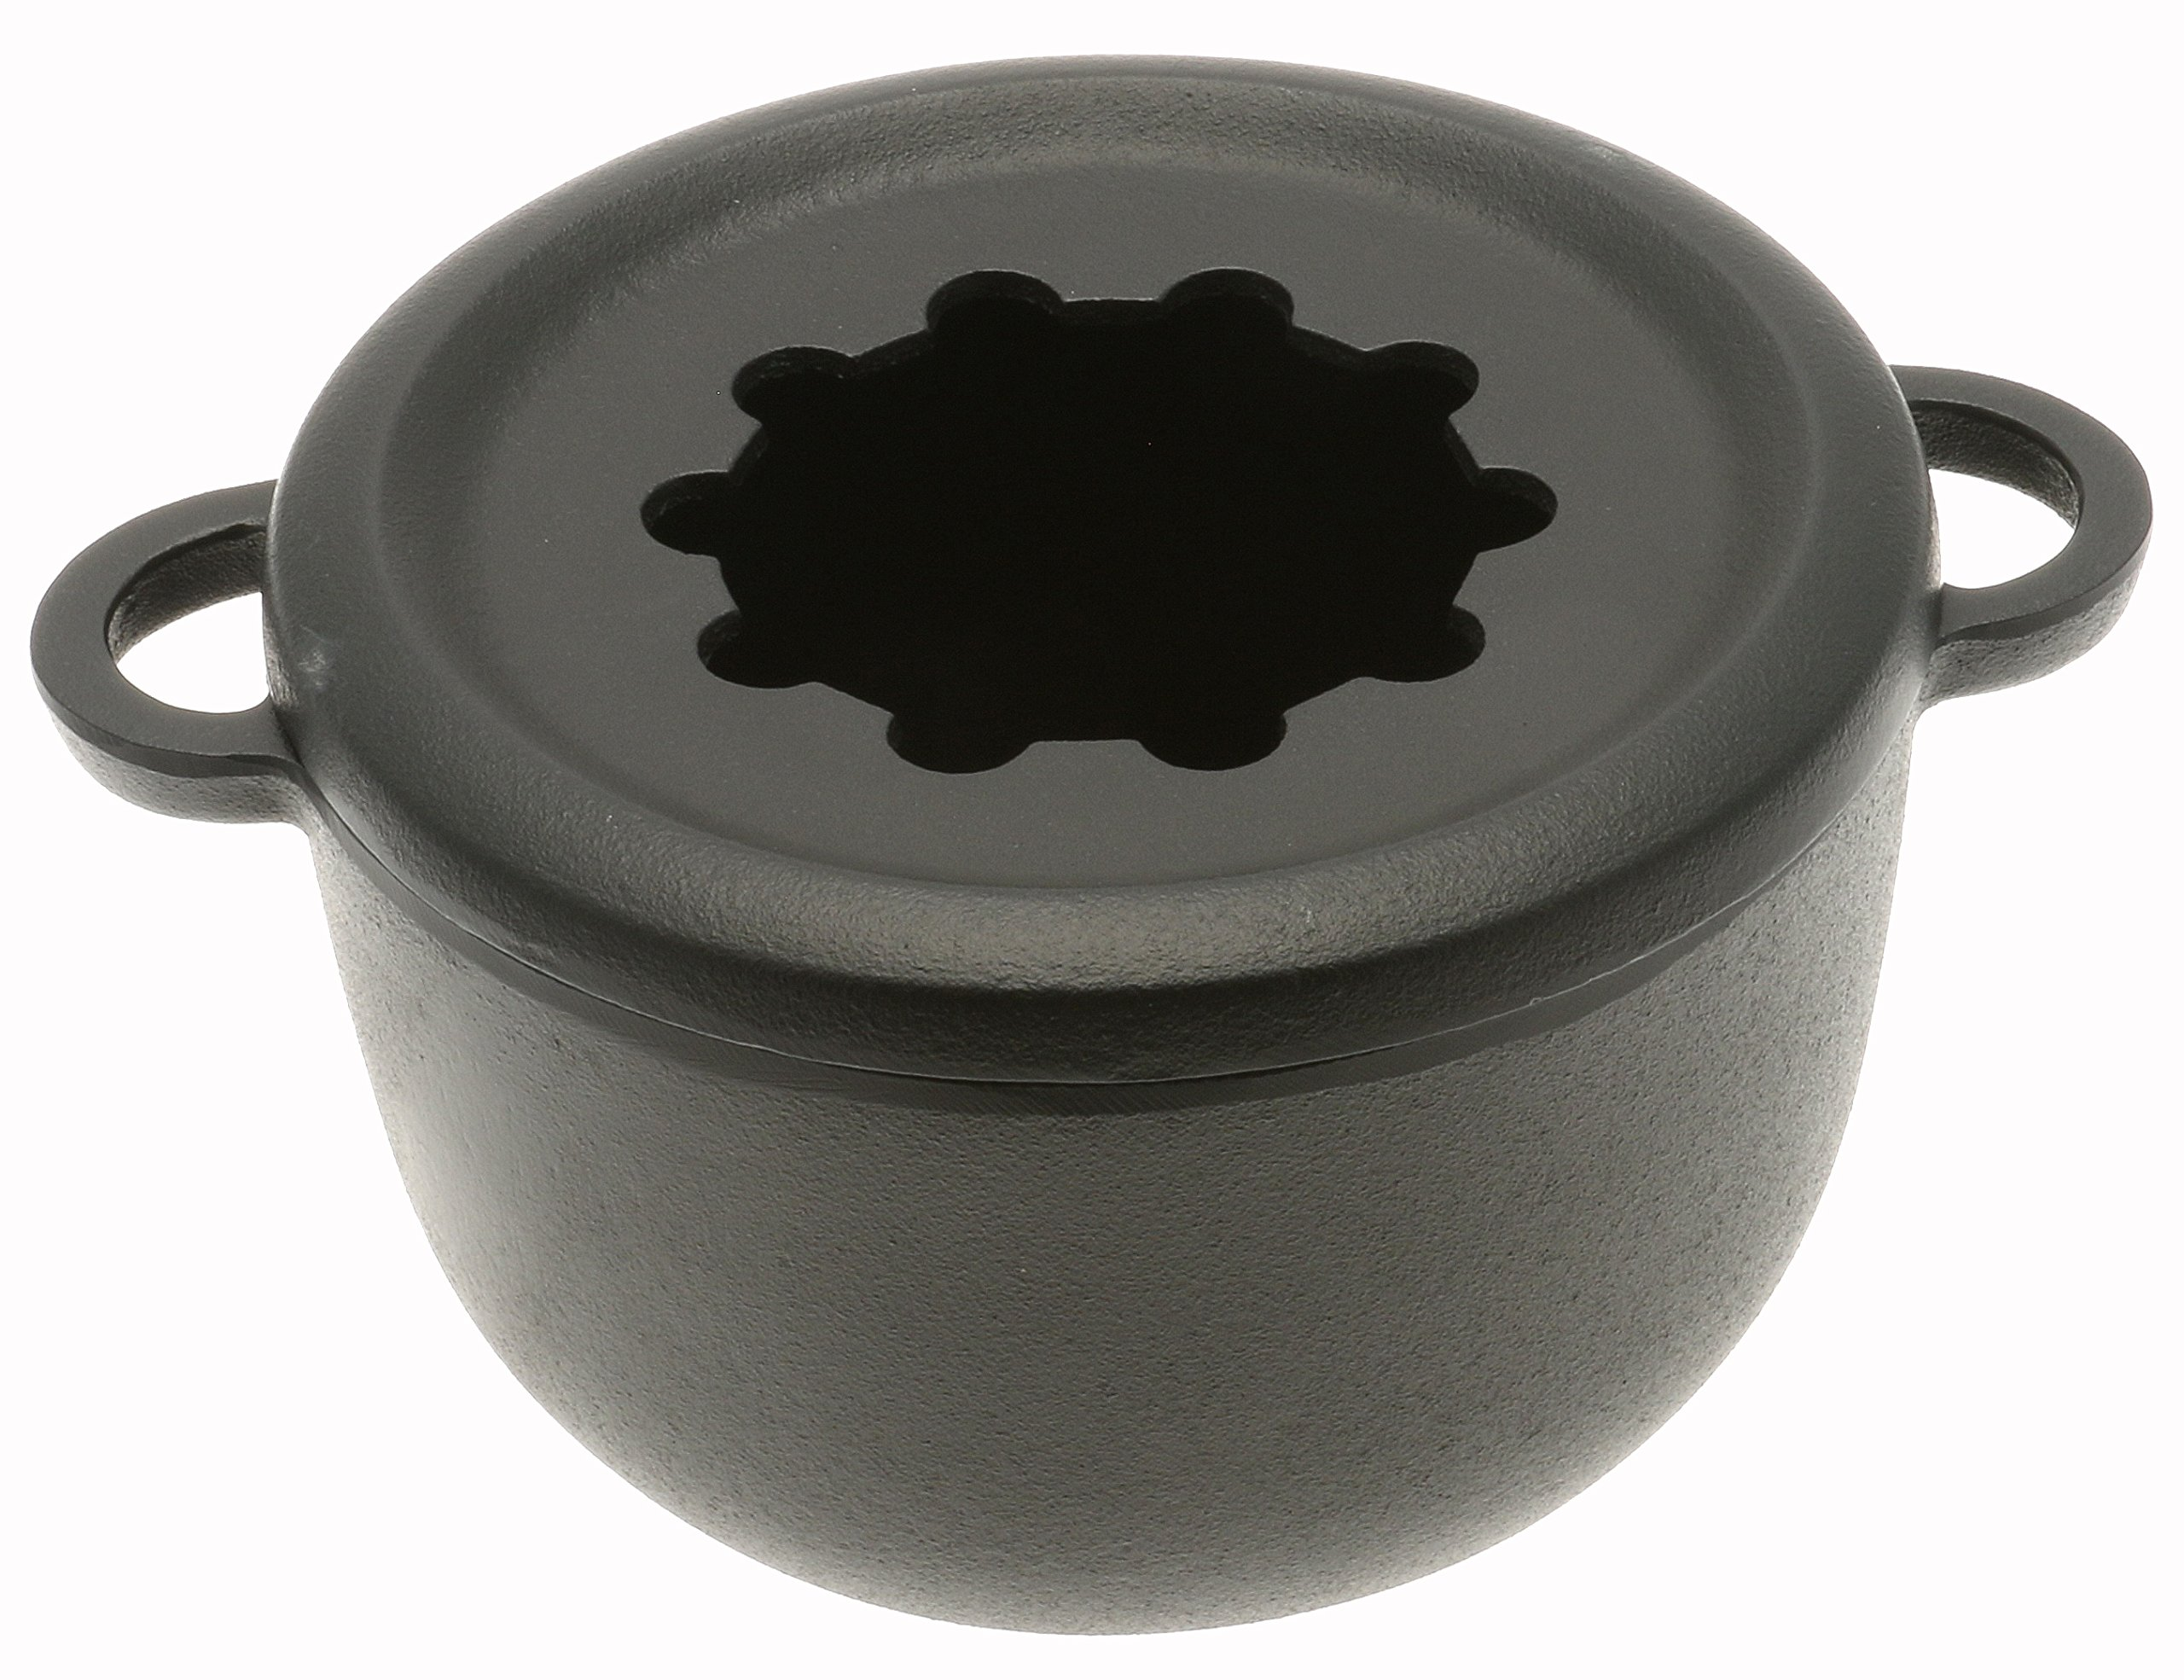 Iwachu Cast Iron Fondue and Deep-Fry Pot with Scalloped Ring and Wire Rack, Black